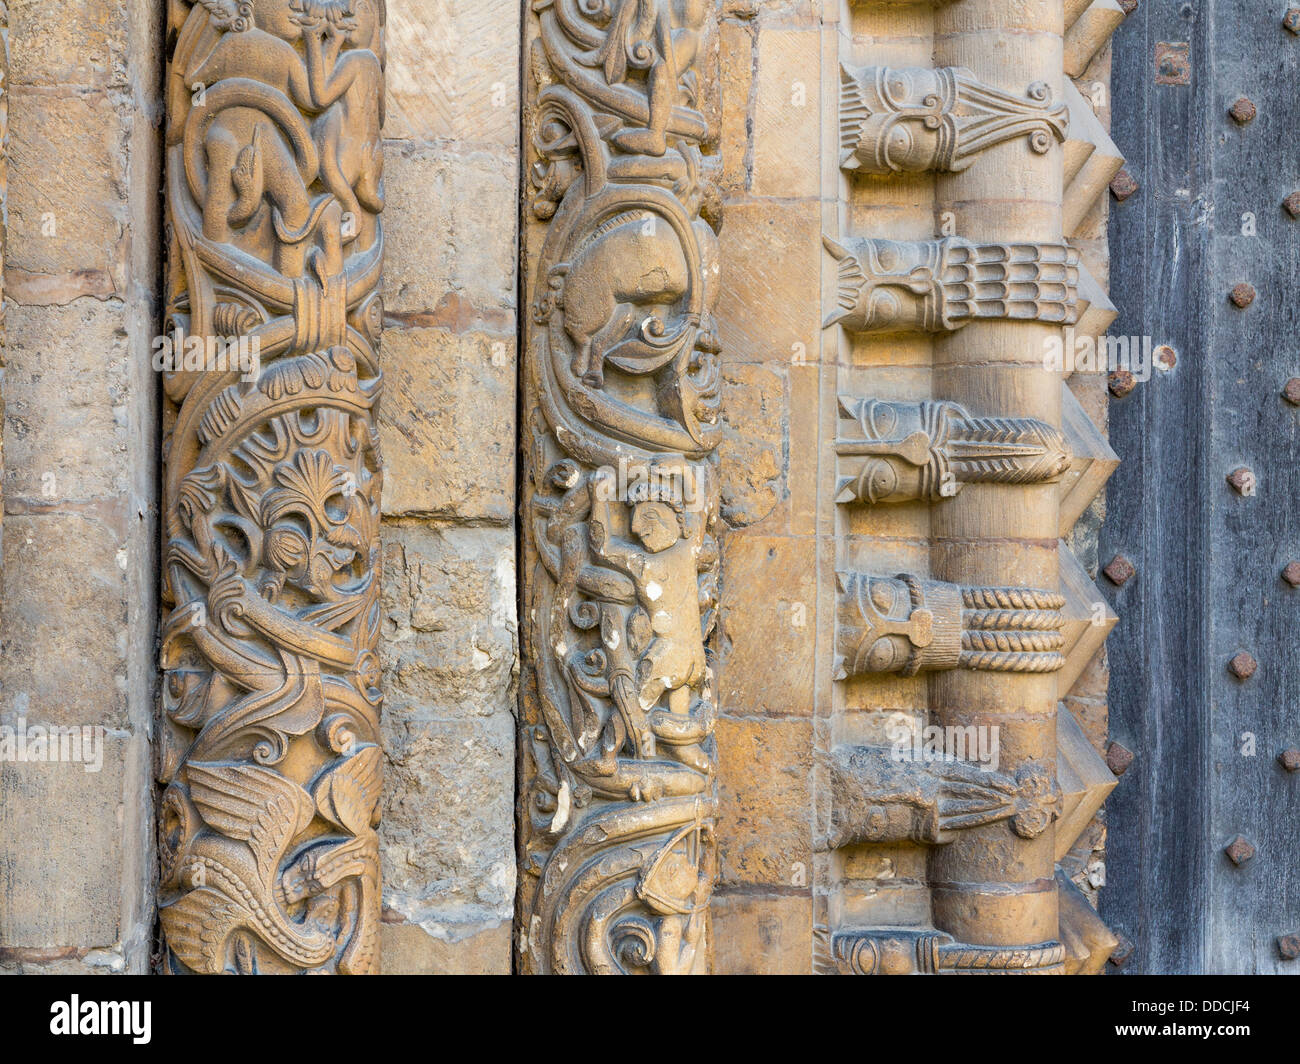 Carved masonry detail from the main entrance to Lincoln Cathedral - Stock Image